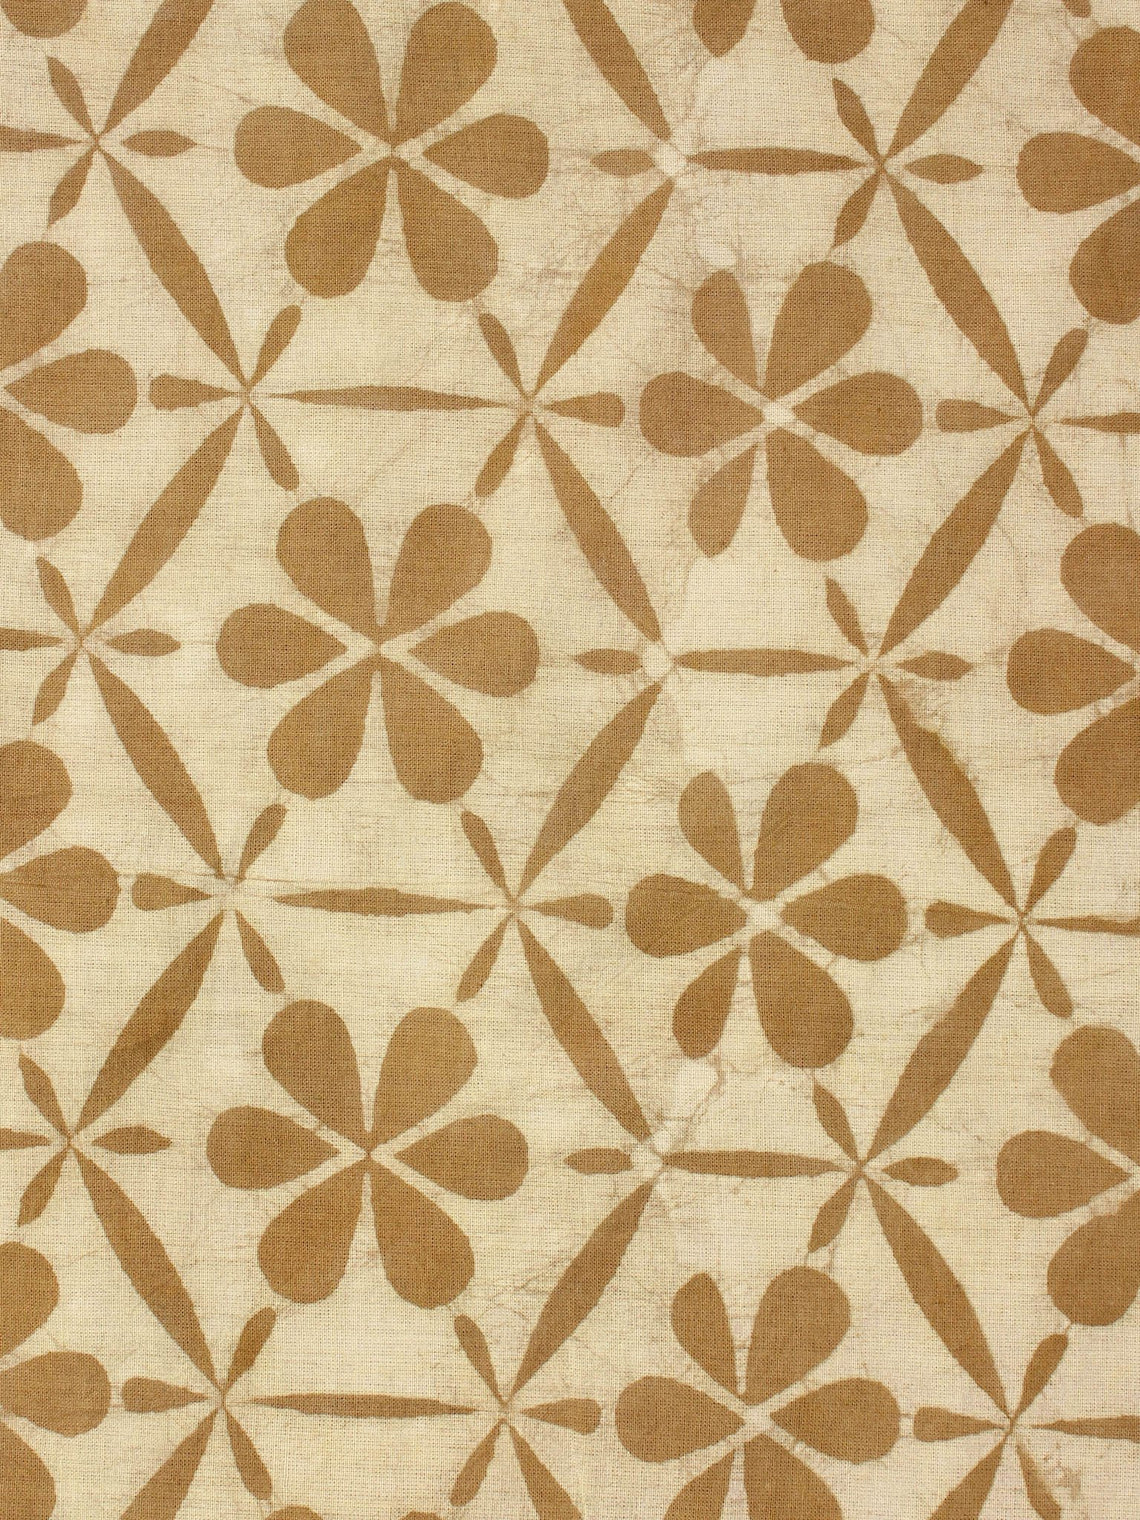 Beige Mustard Natural Dyed Hand Block Printed Cotton Fabric Per Meter - F0916264